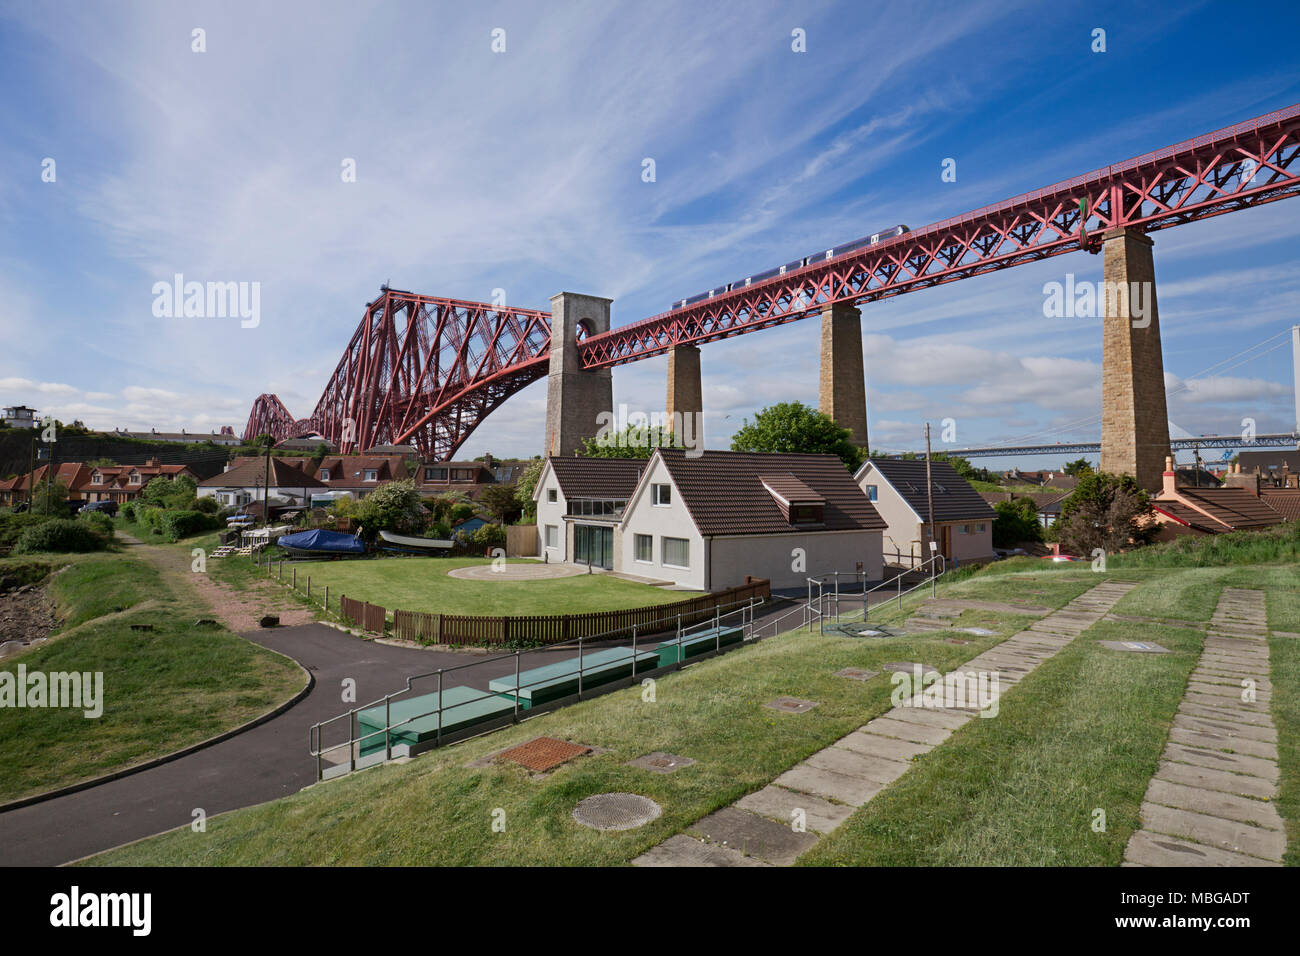 North Queensferry, The Forth railway Bridge (Fife)  A Scotrail class 170 train passing - Stock Image